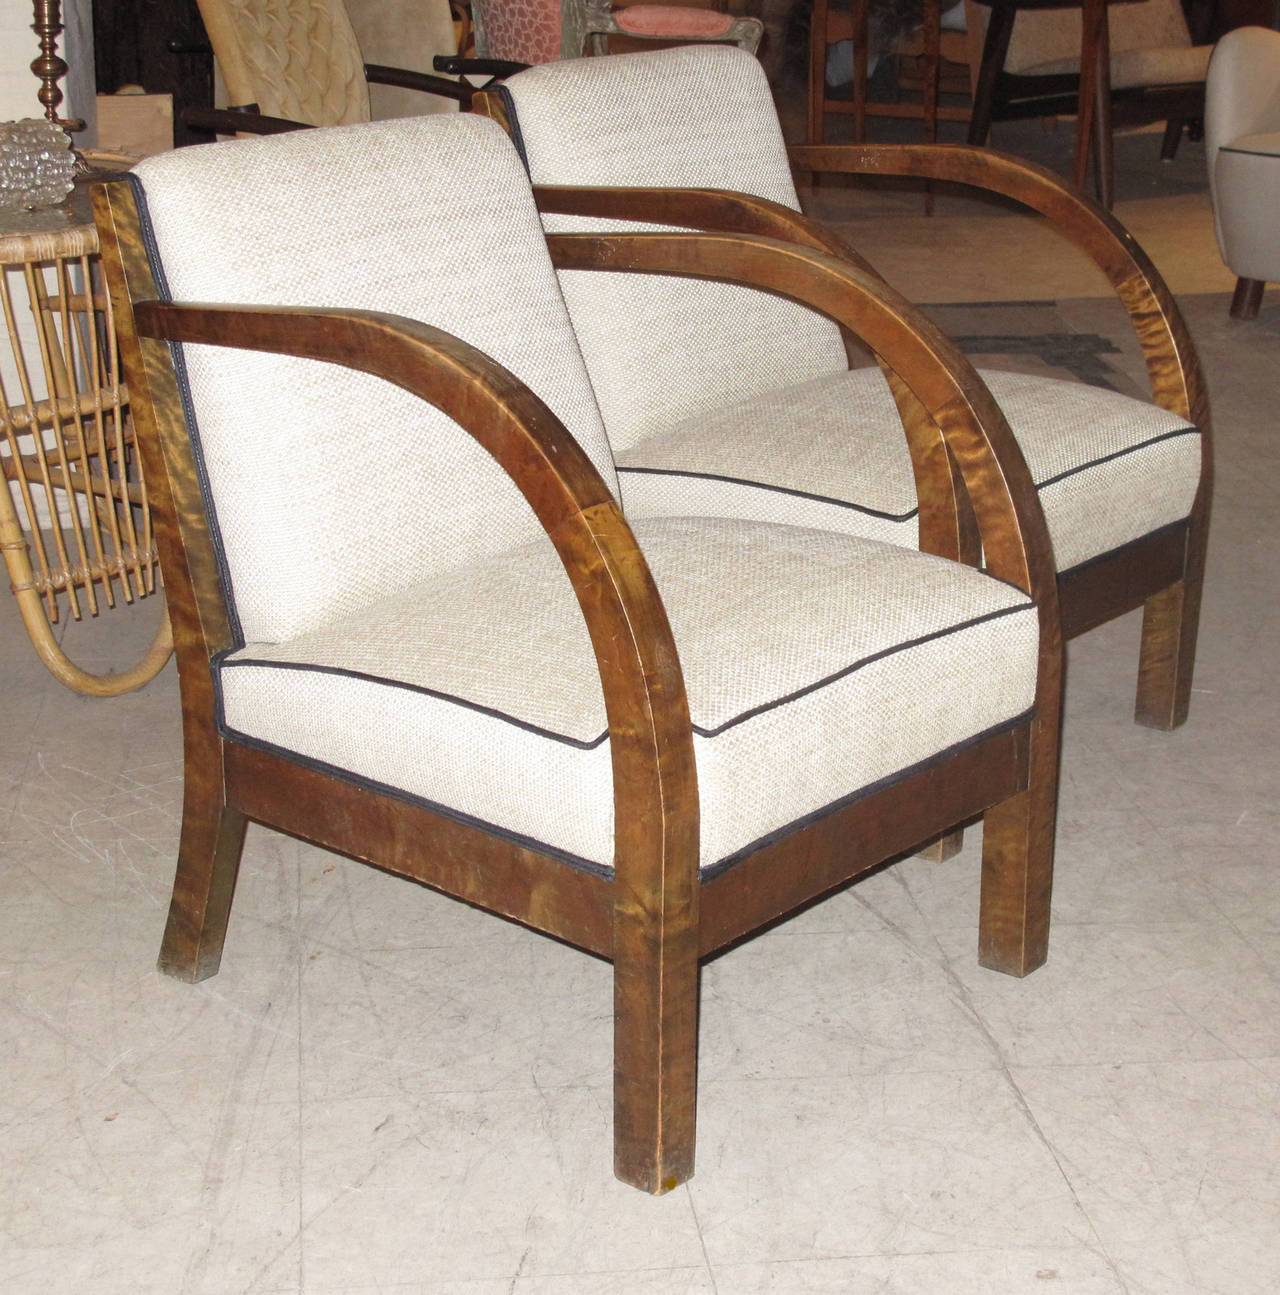 Pair Of Danish 1930s Birch Wood Armchairs With Curved Arms 2